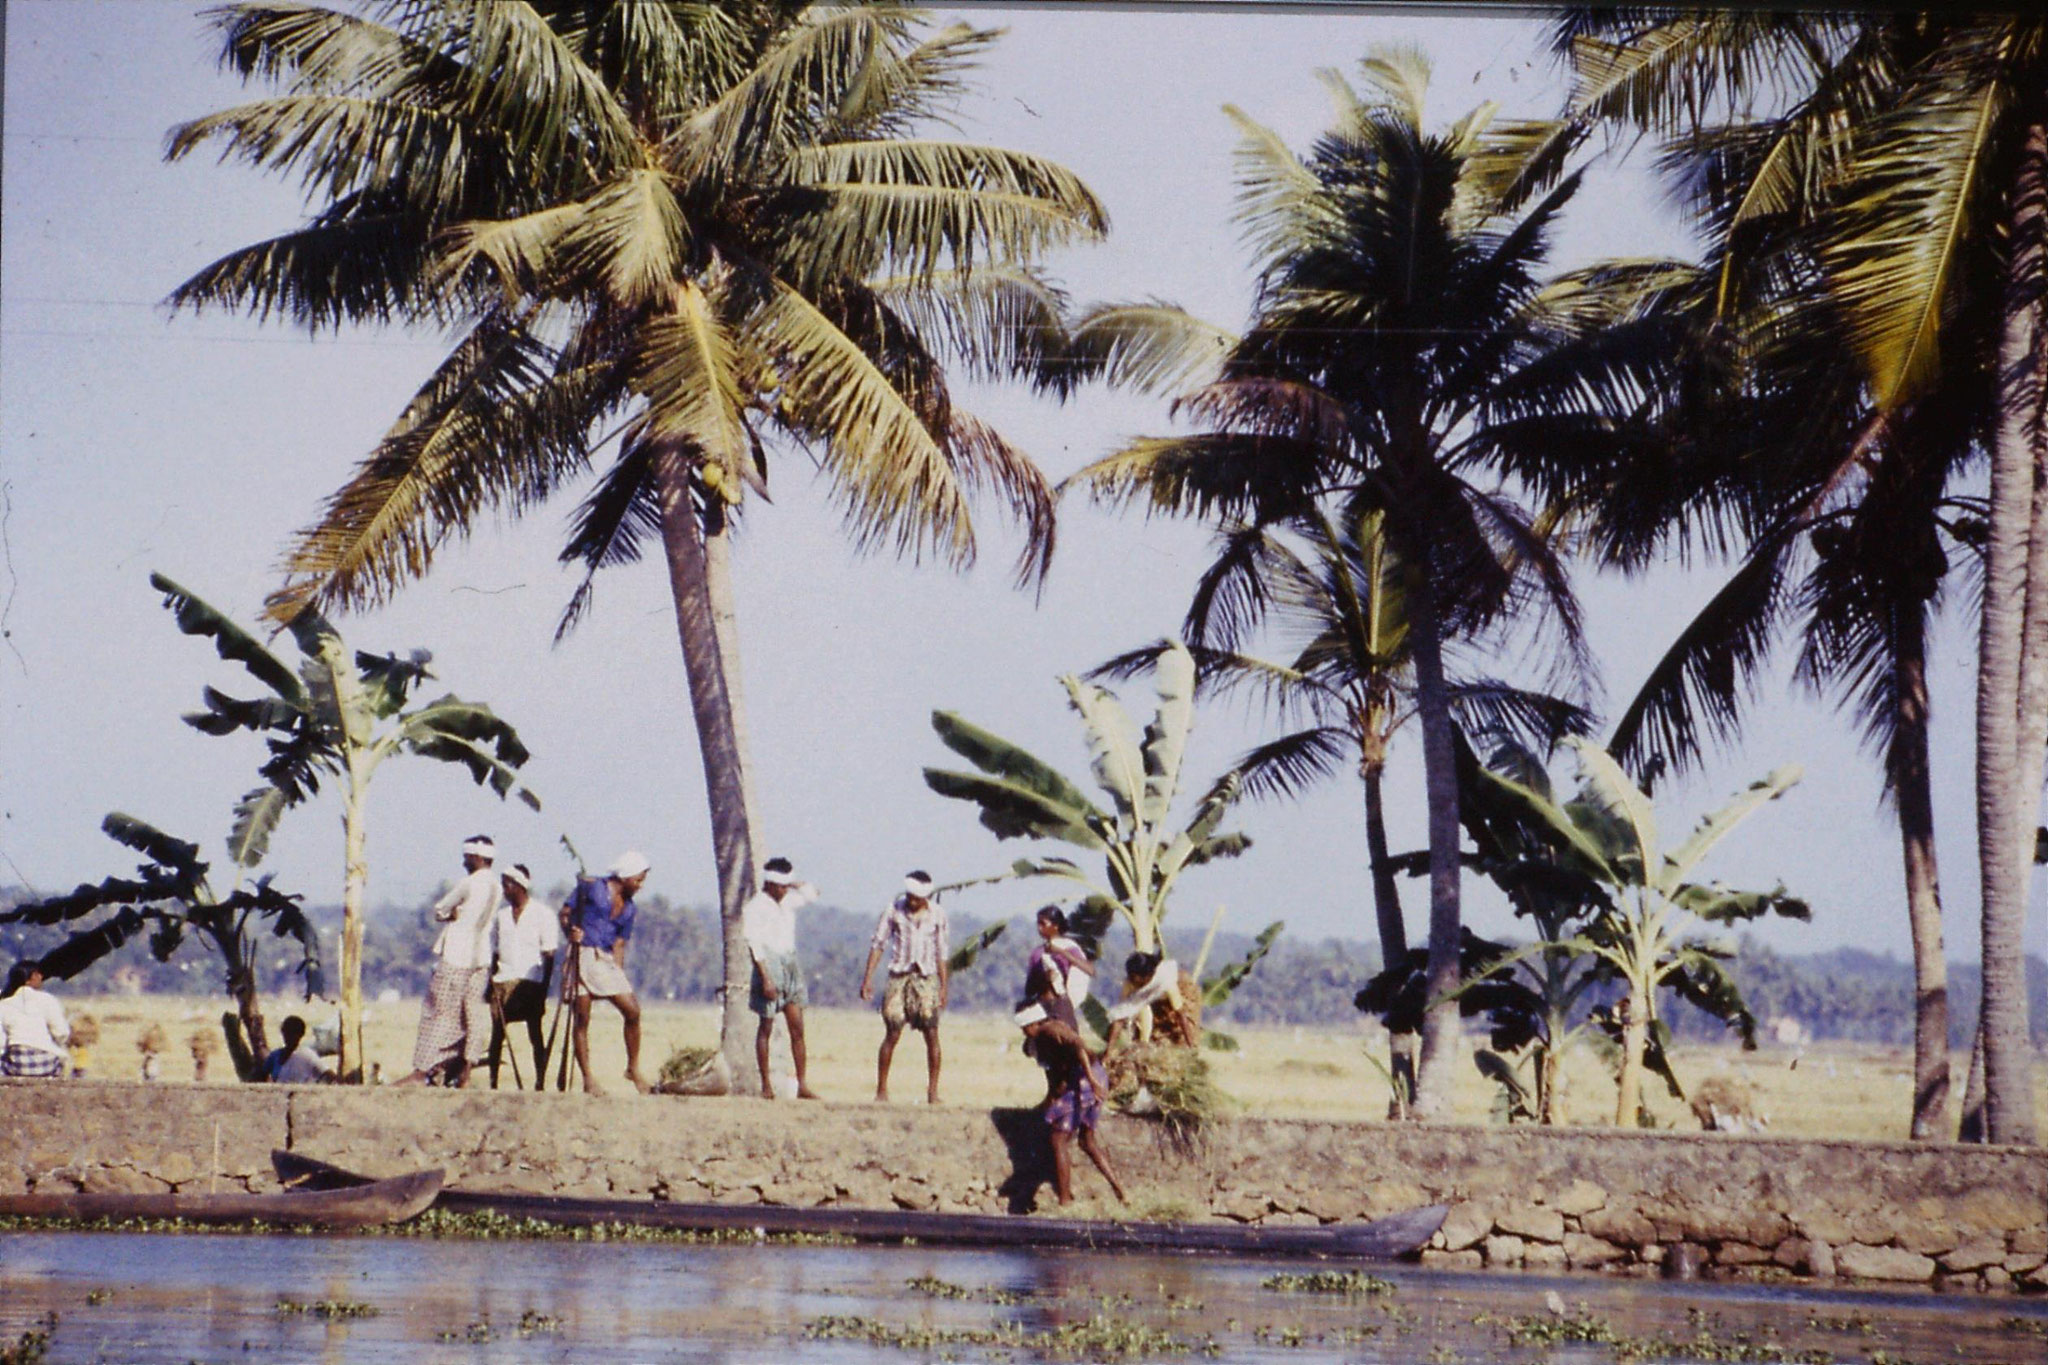 106/7: 23/2/1990 Boat to Alleppey